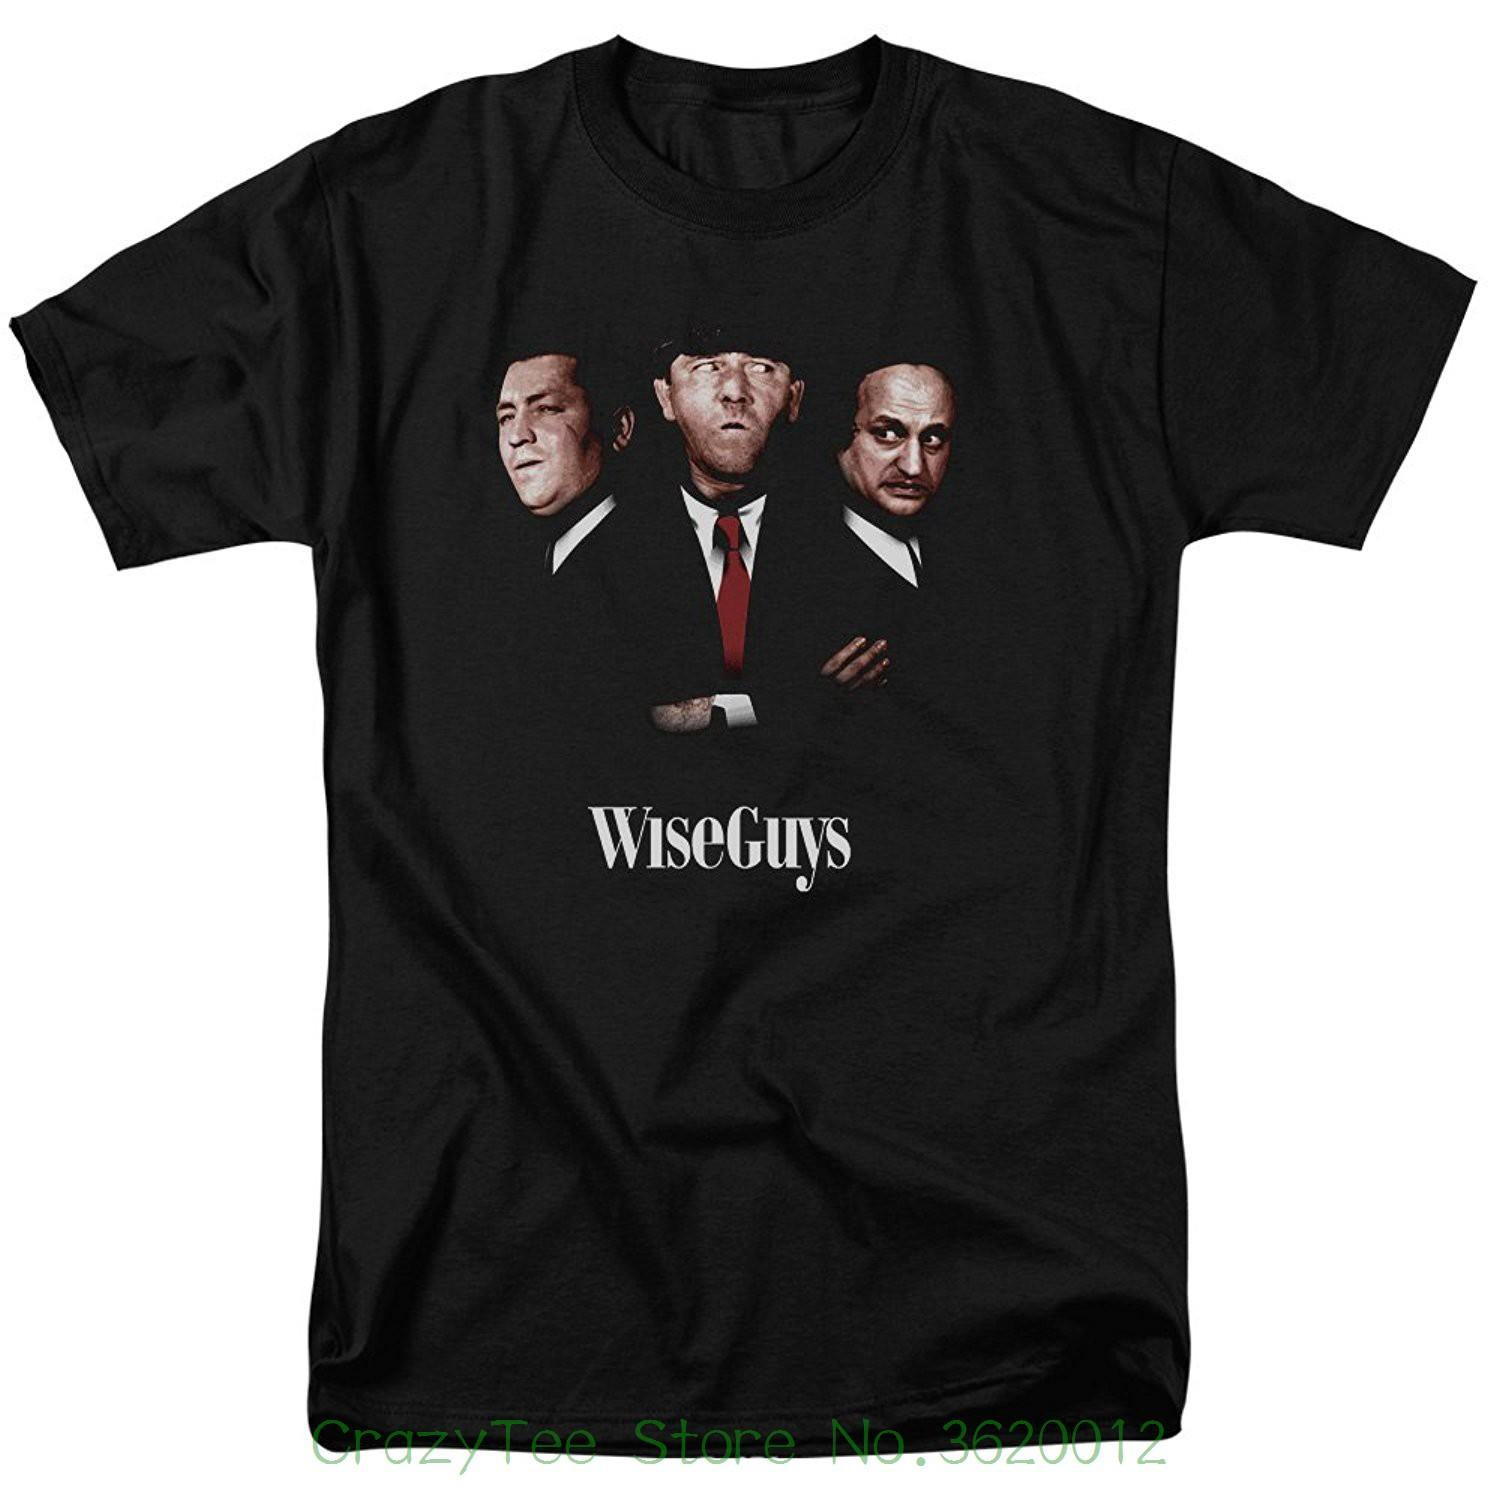 bbbfbc8711 100 % Cotton Tee Shirt For Men Three Stooges Slapstick Famous Comedy Group  Wiseguys Adult T Shirt Tee Buy Funny T Shirts Shirts And T Shirts From ...